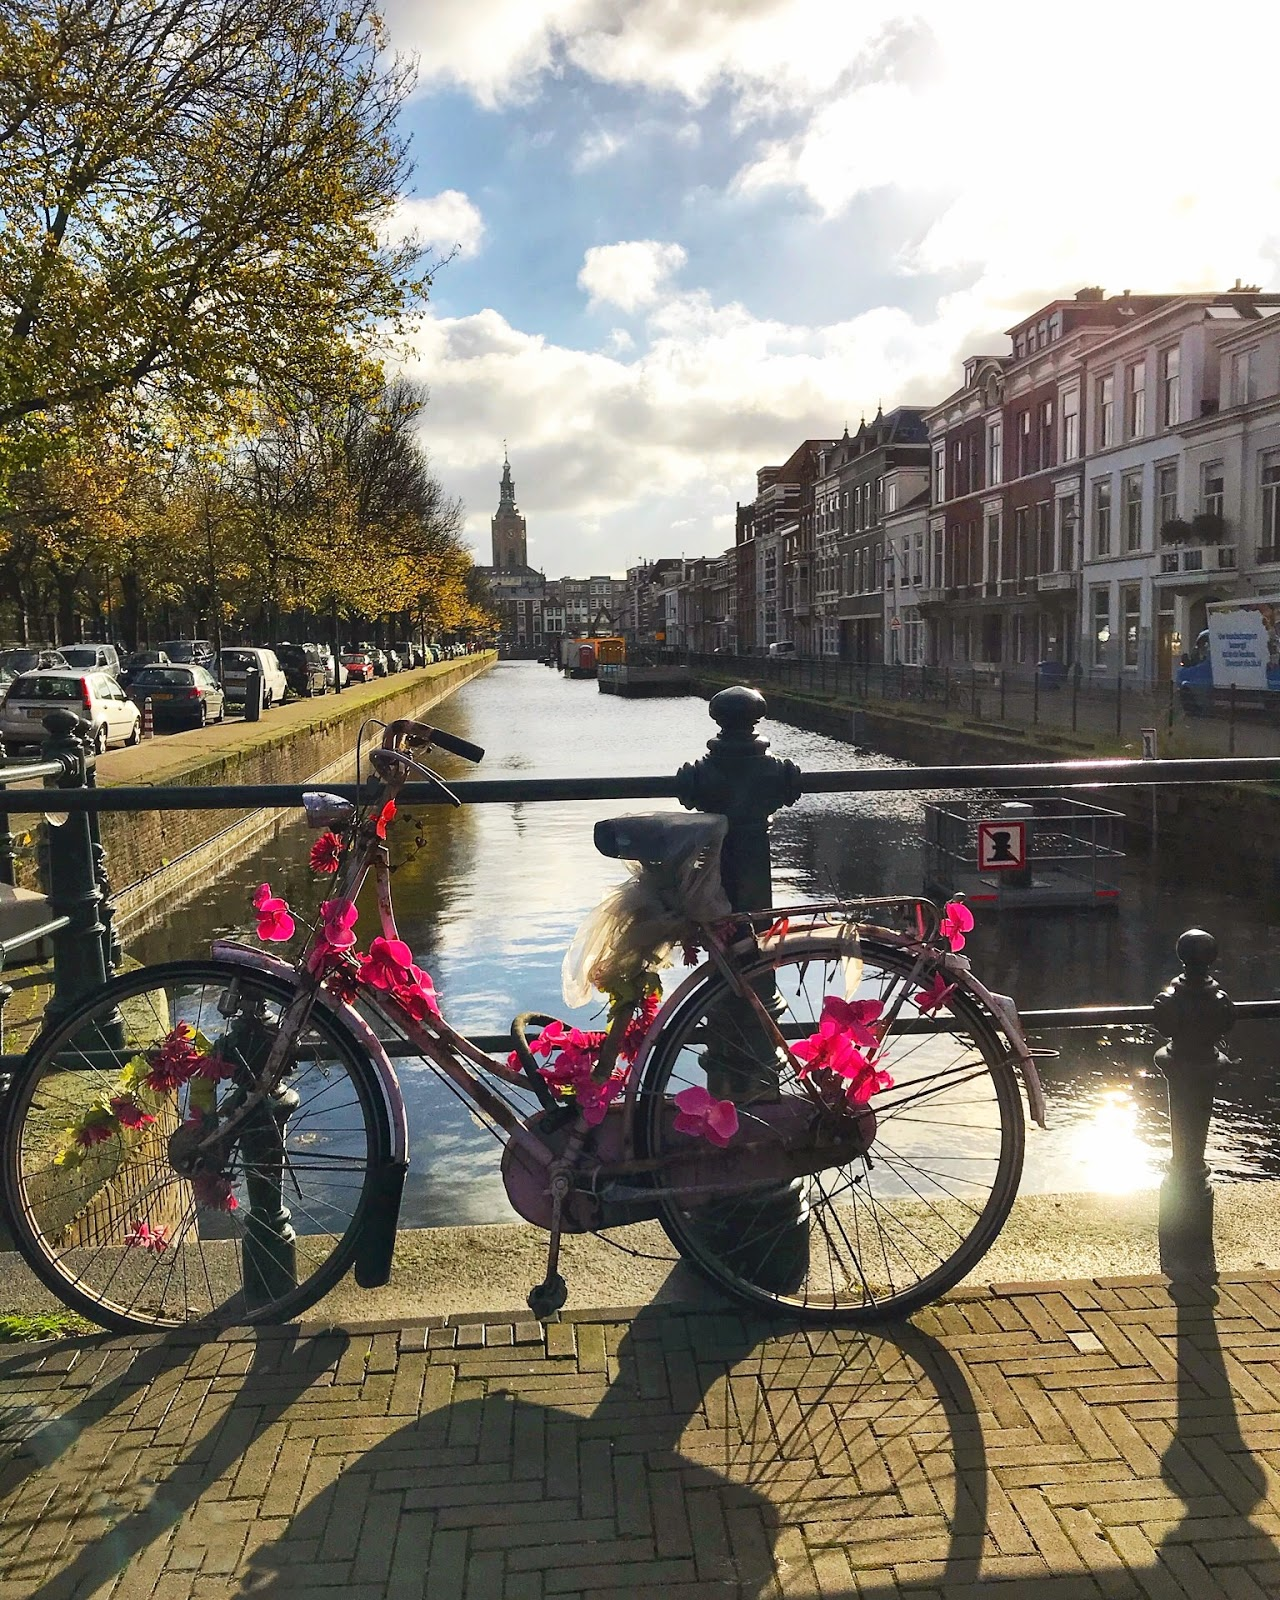 beautifully decorated floral bike overlooking canal in The Hague Netherlands